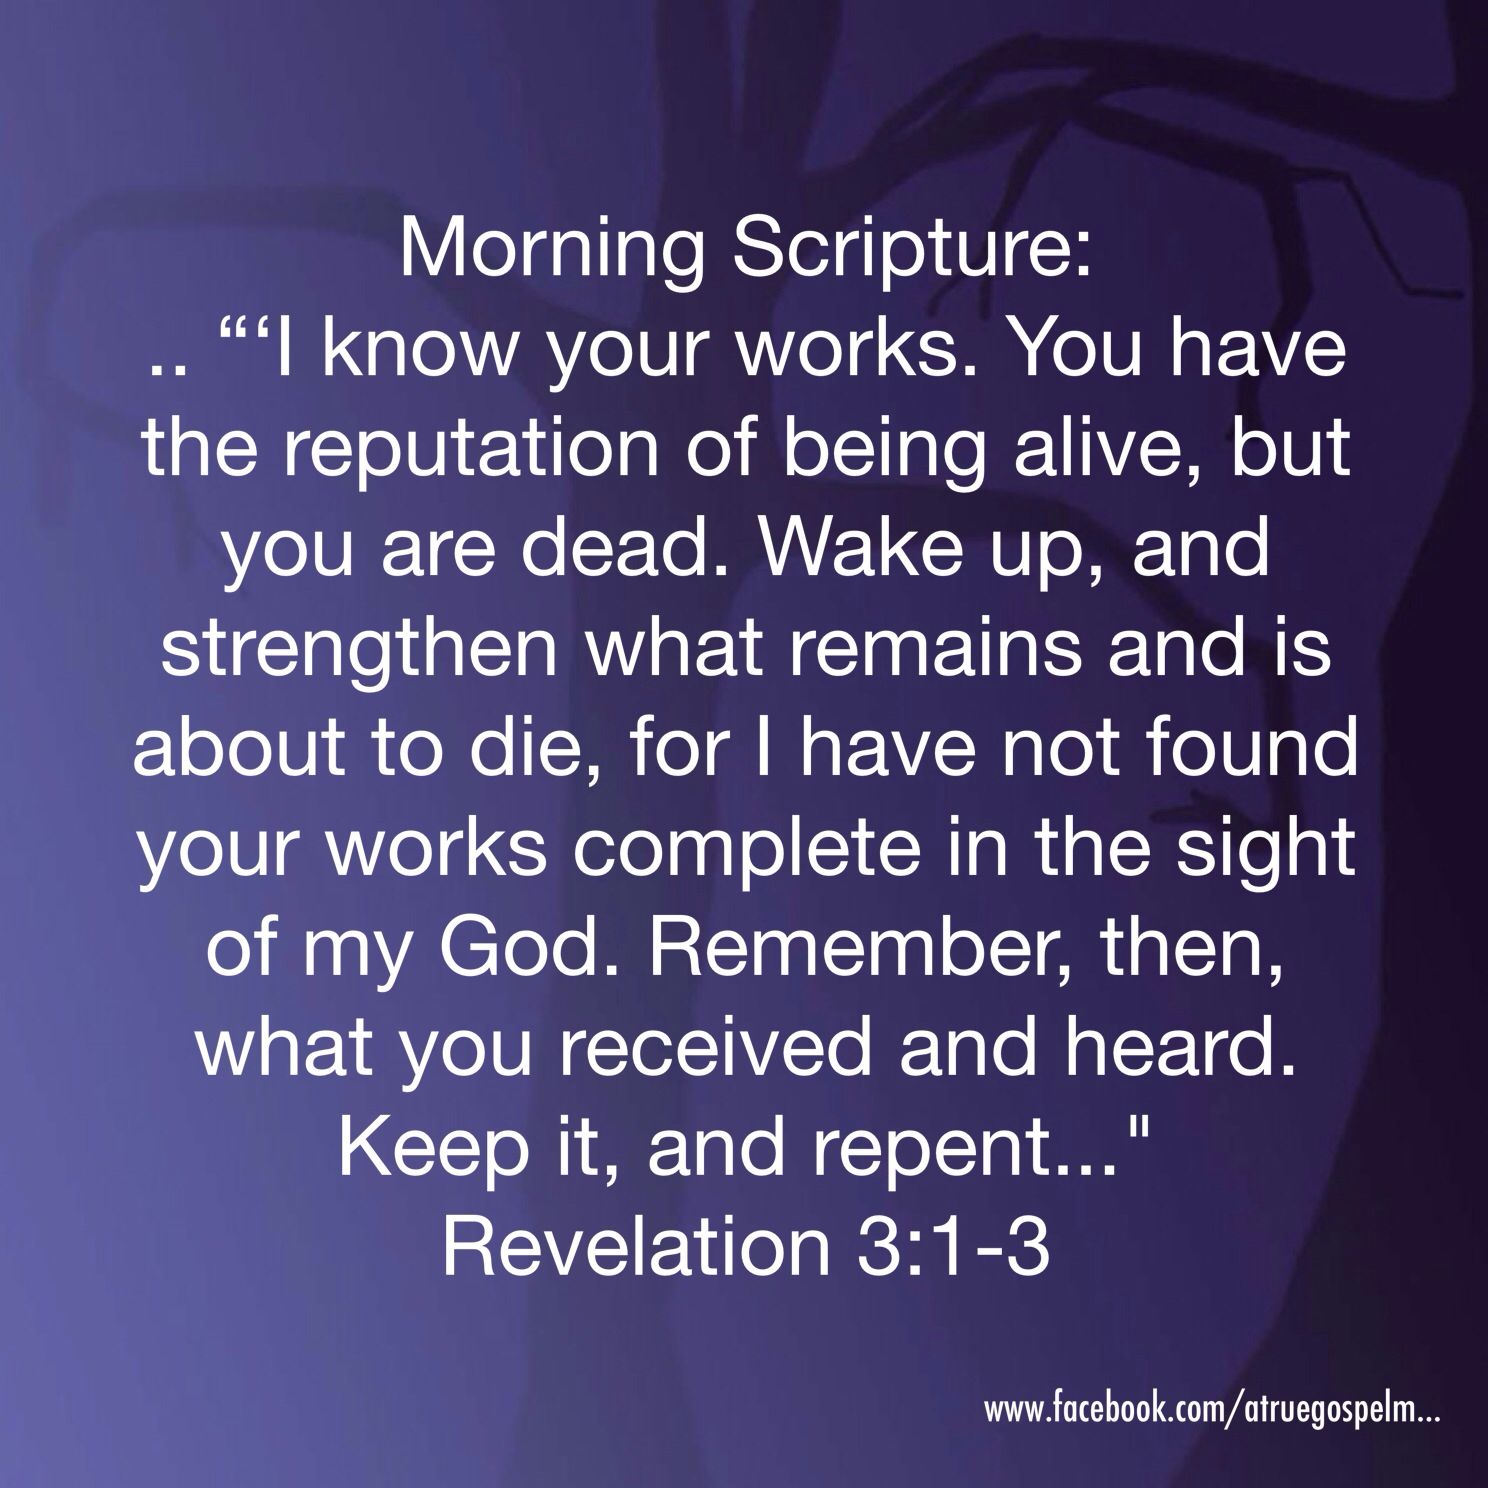 Morning Scripture: You have the reputation of being alive, but you are dead... Repent.. #morningscripture #scripturequote #biblequote #goodmorning #quote #seekgod #dead #alive #repent #preach #praise #testify #teamjesus #lhbk #believethegospel #moms #teens #grandmas #love